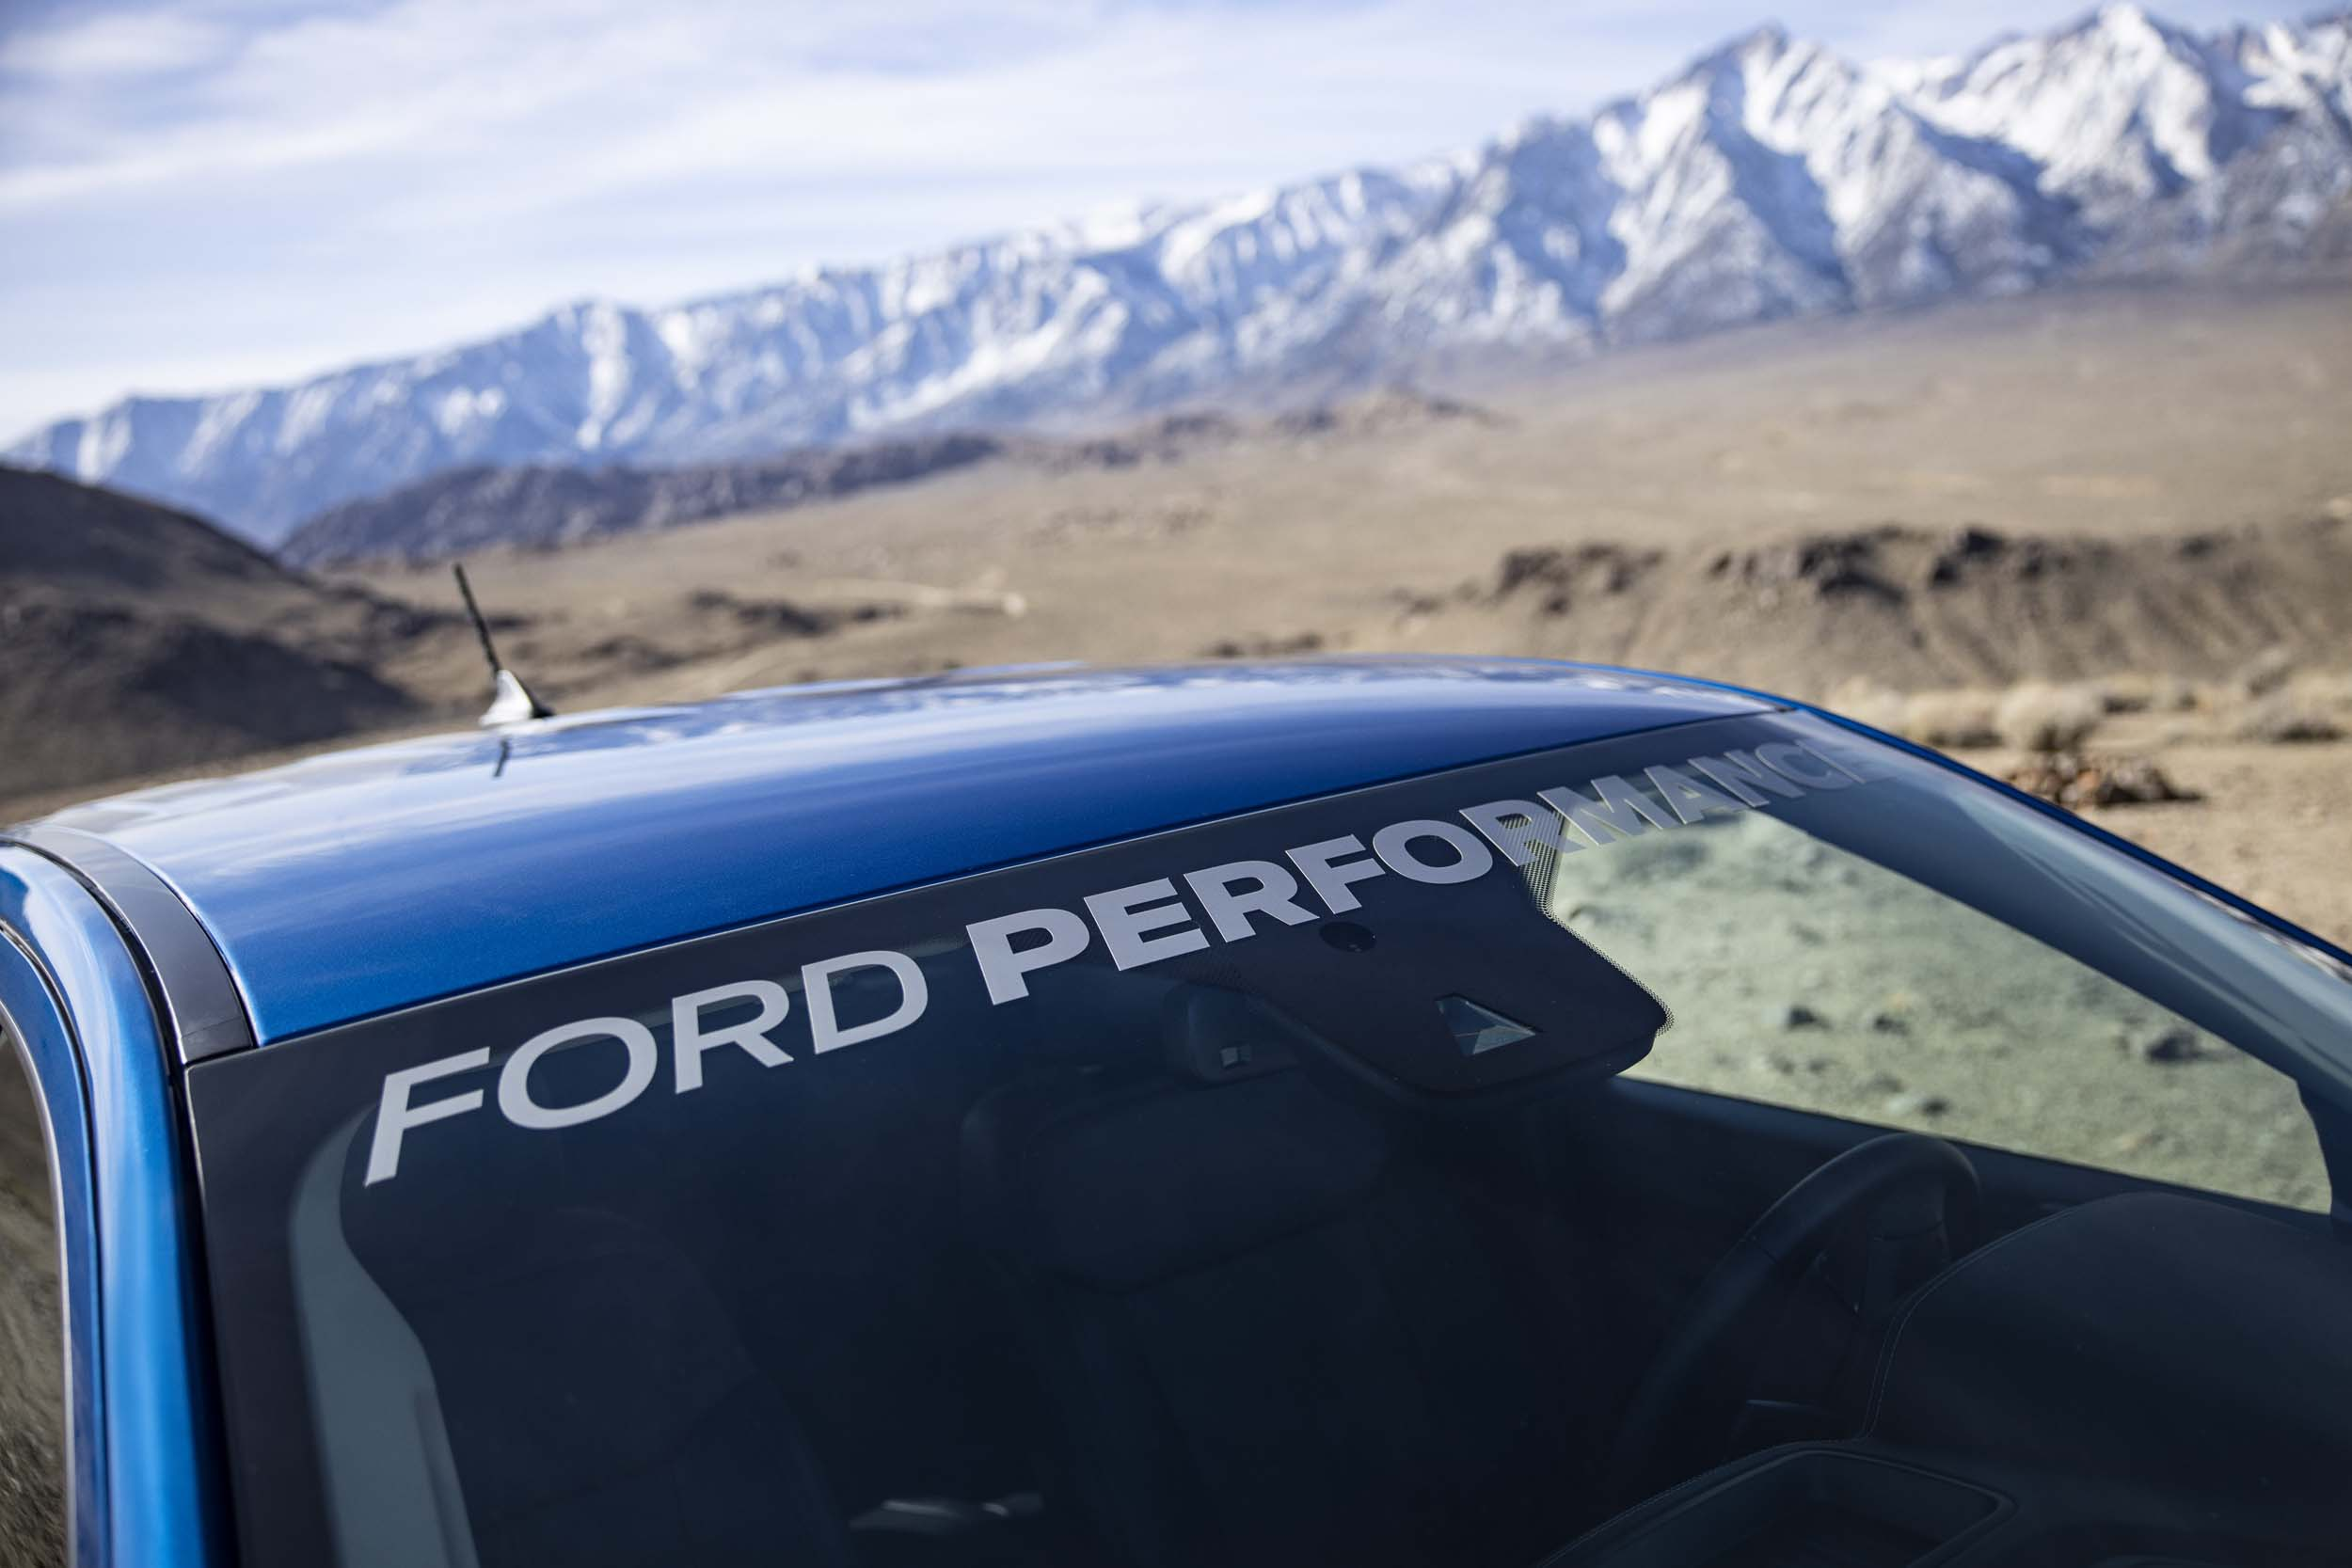 Performance Package windshield logo